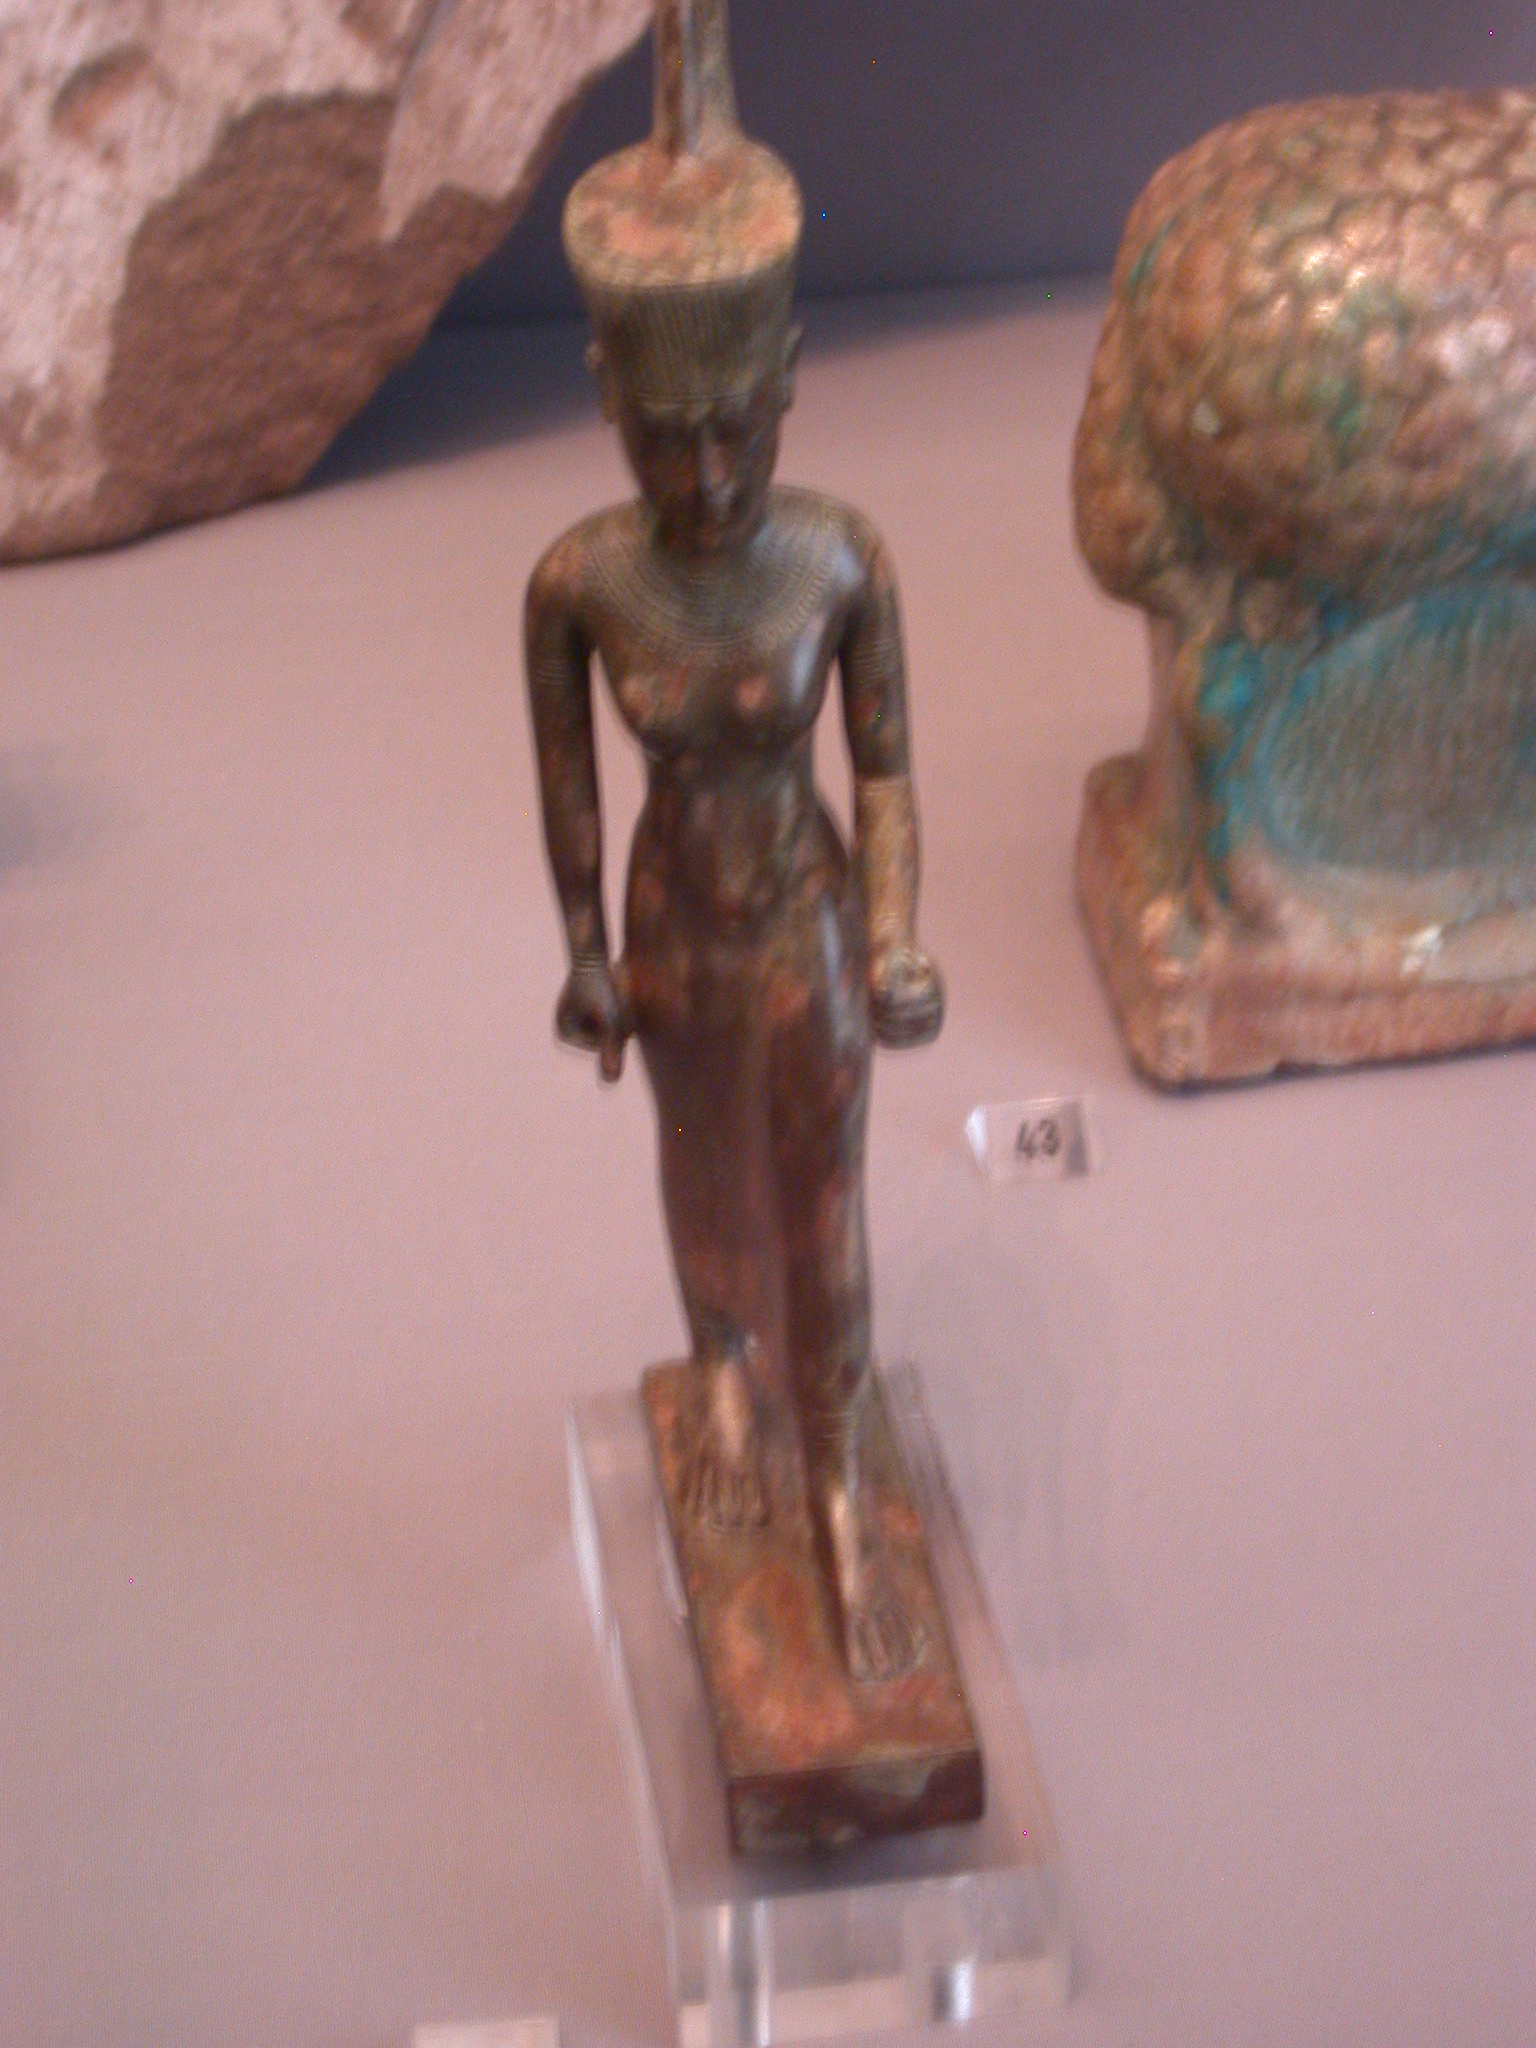 Neith Statue, Goddess of Sais Associated With Warfare, Late Period, 746-336 BCE, Egypt, in Fitzwilliam Museum, Cambridge, England